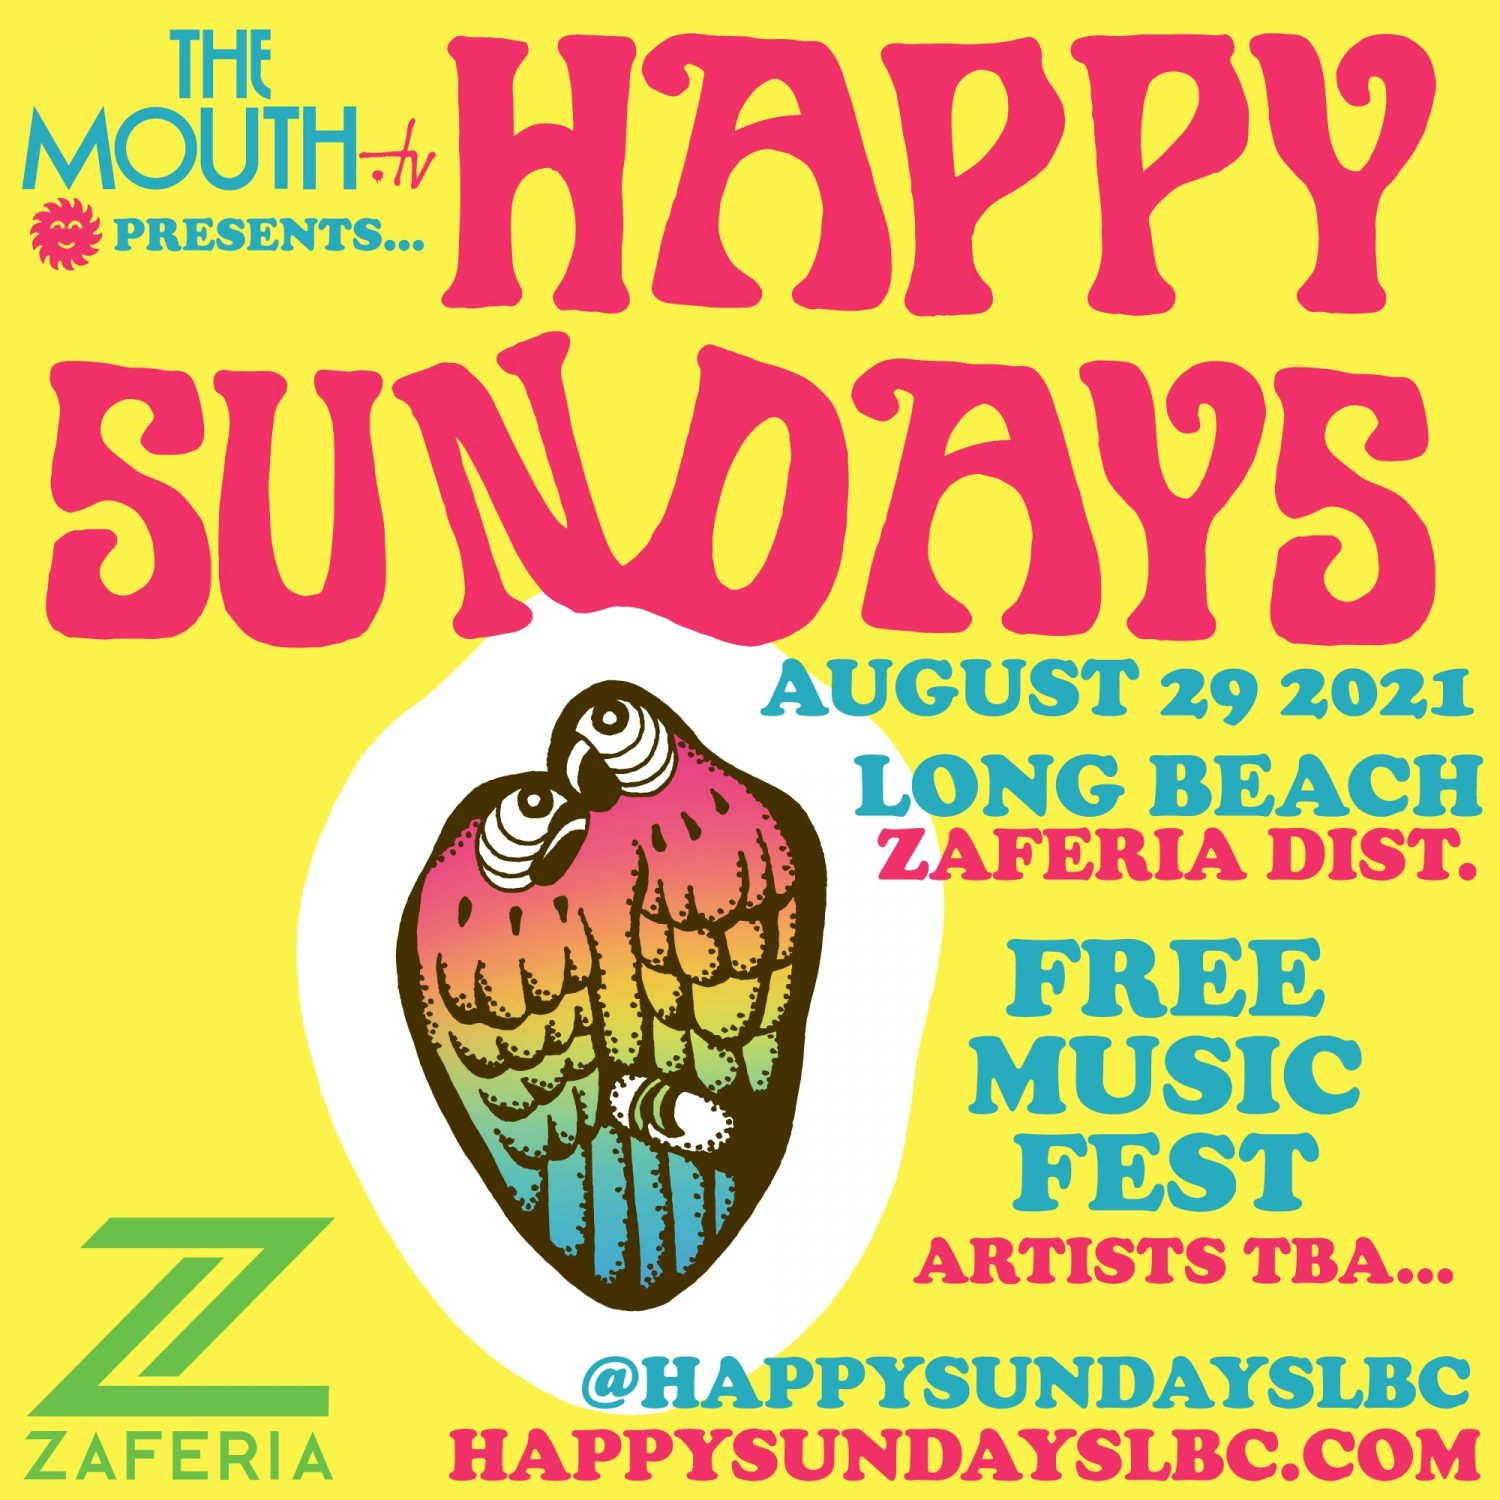 Happy Sundays LBC in the Zaferia District, Long Beach